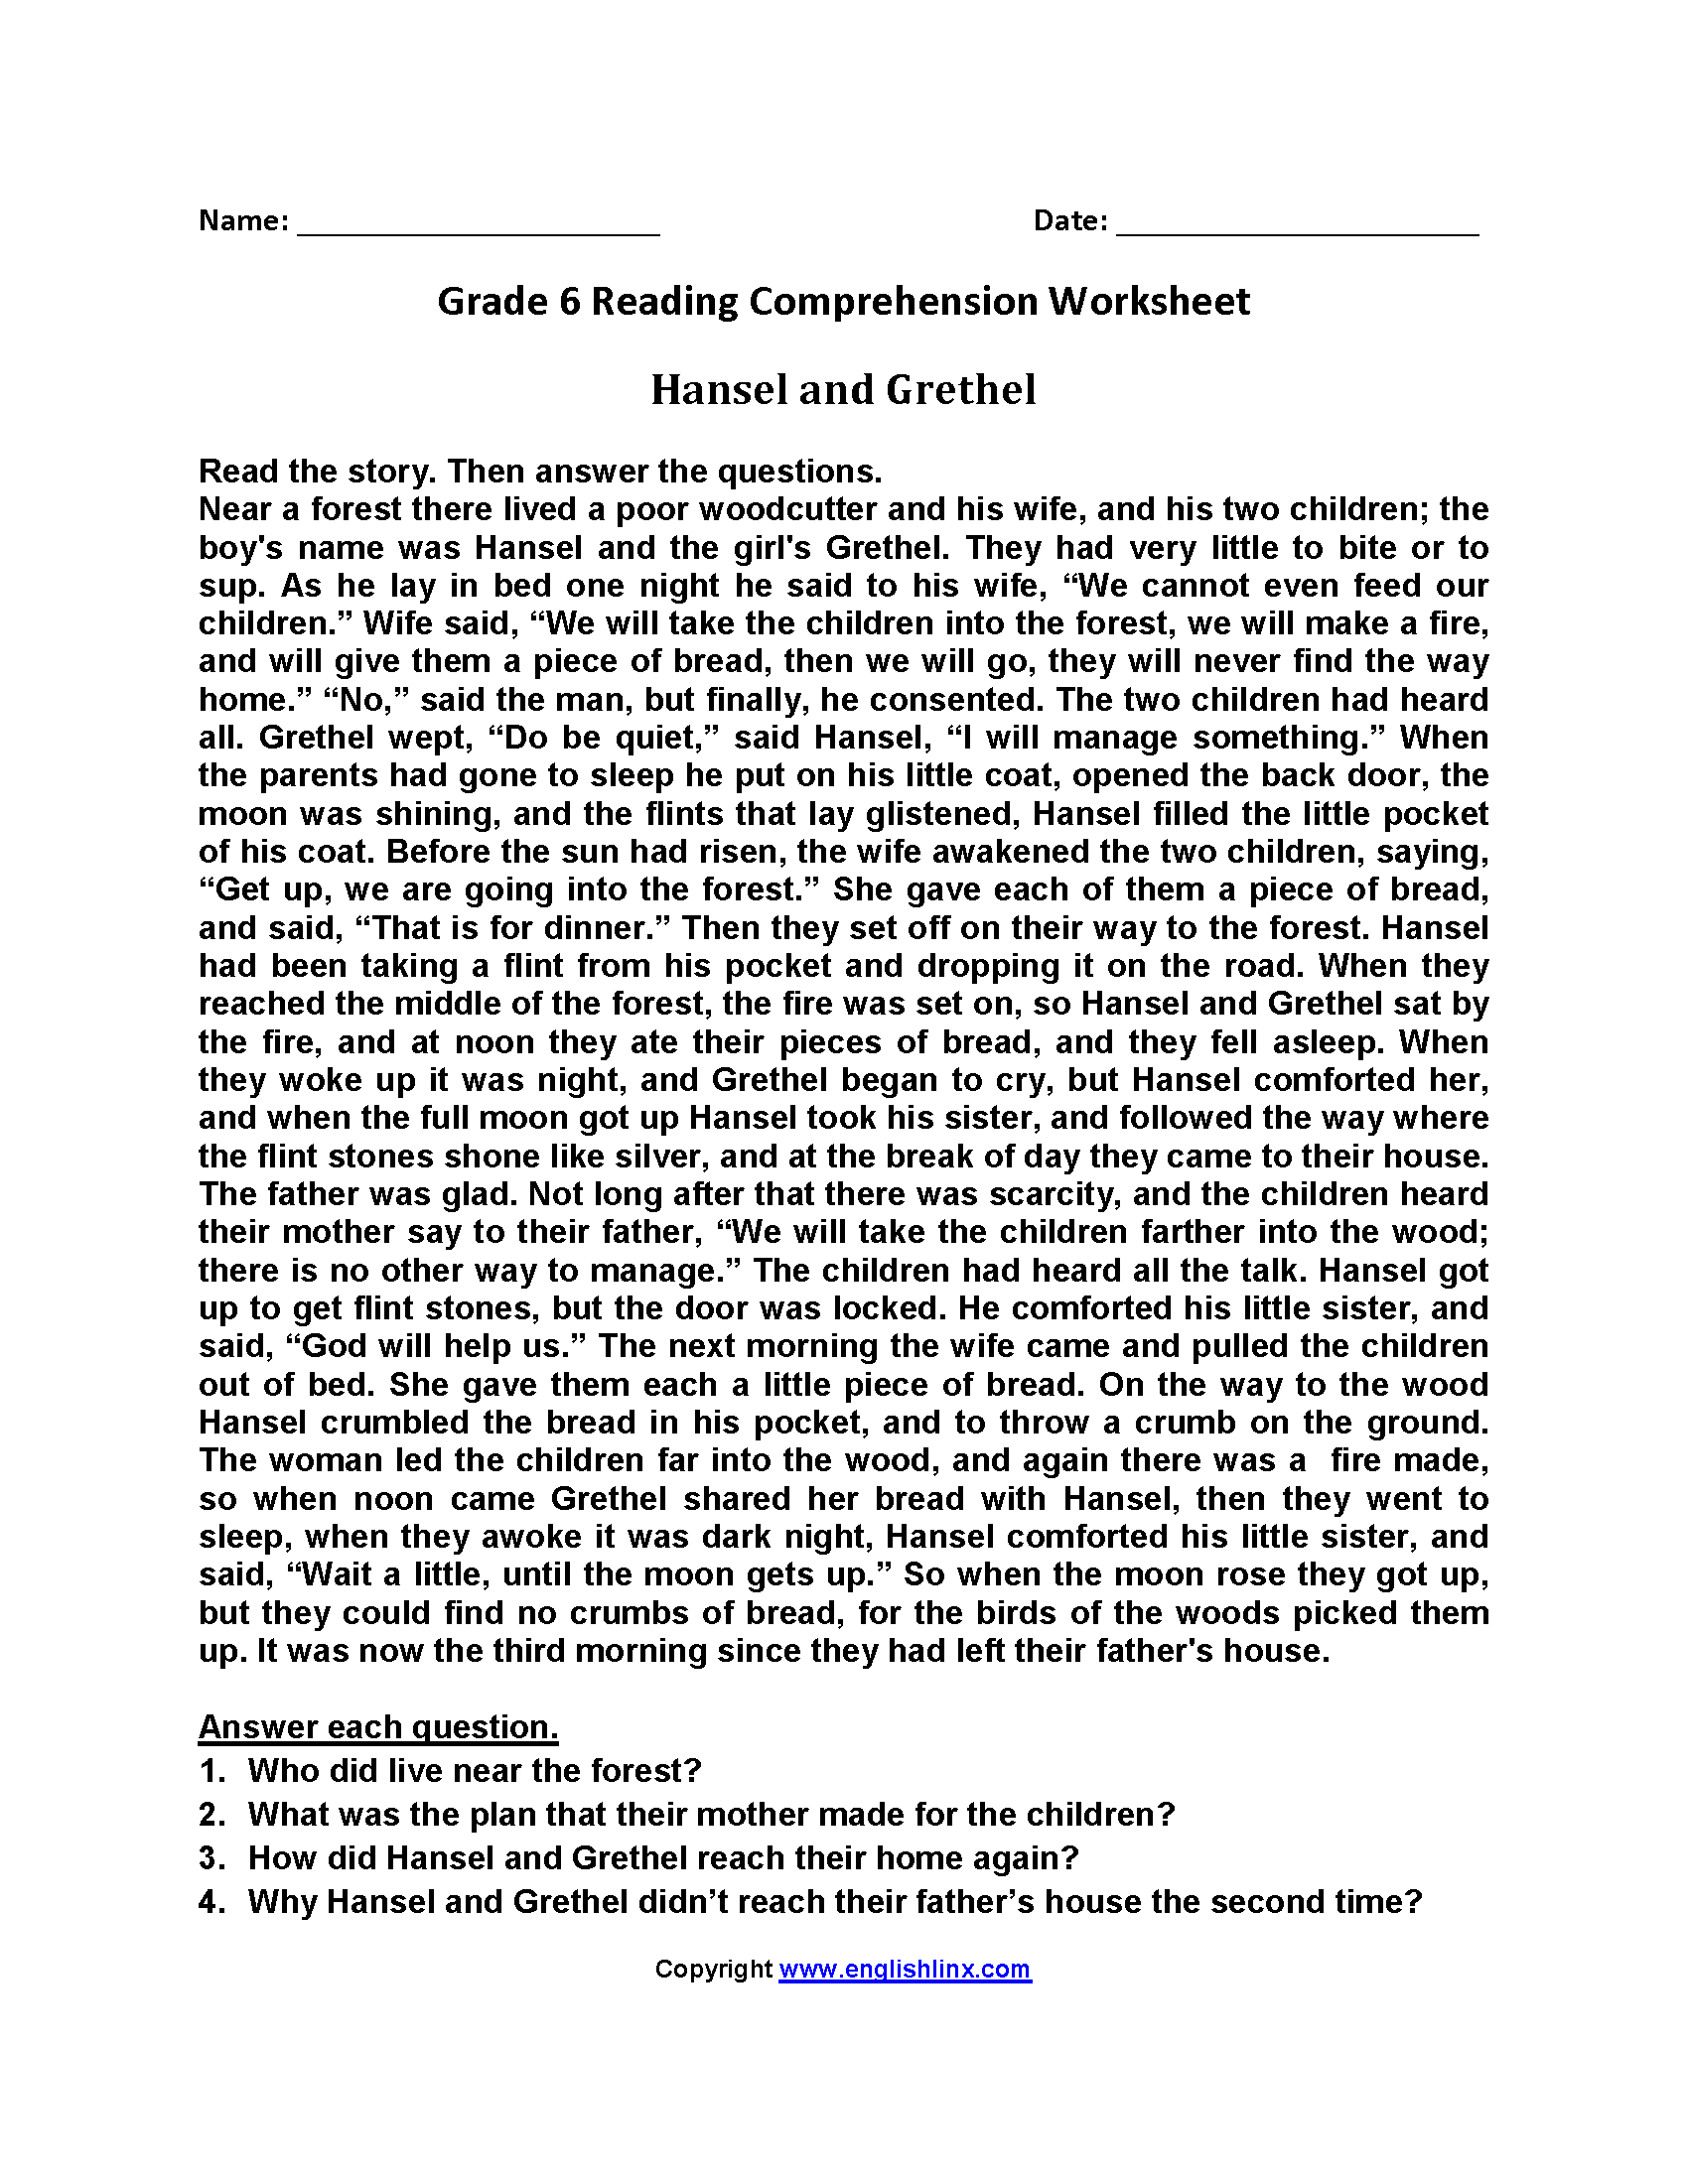 Worksheets Reading Comprehension Worksheets 6th Grade